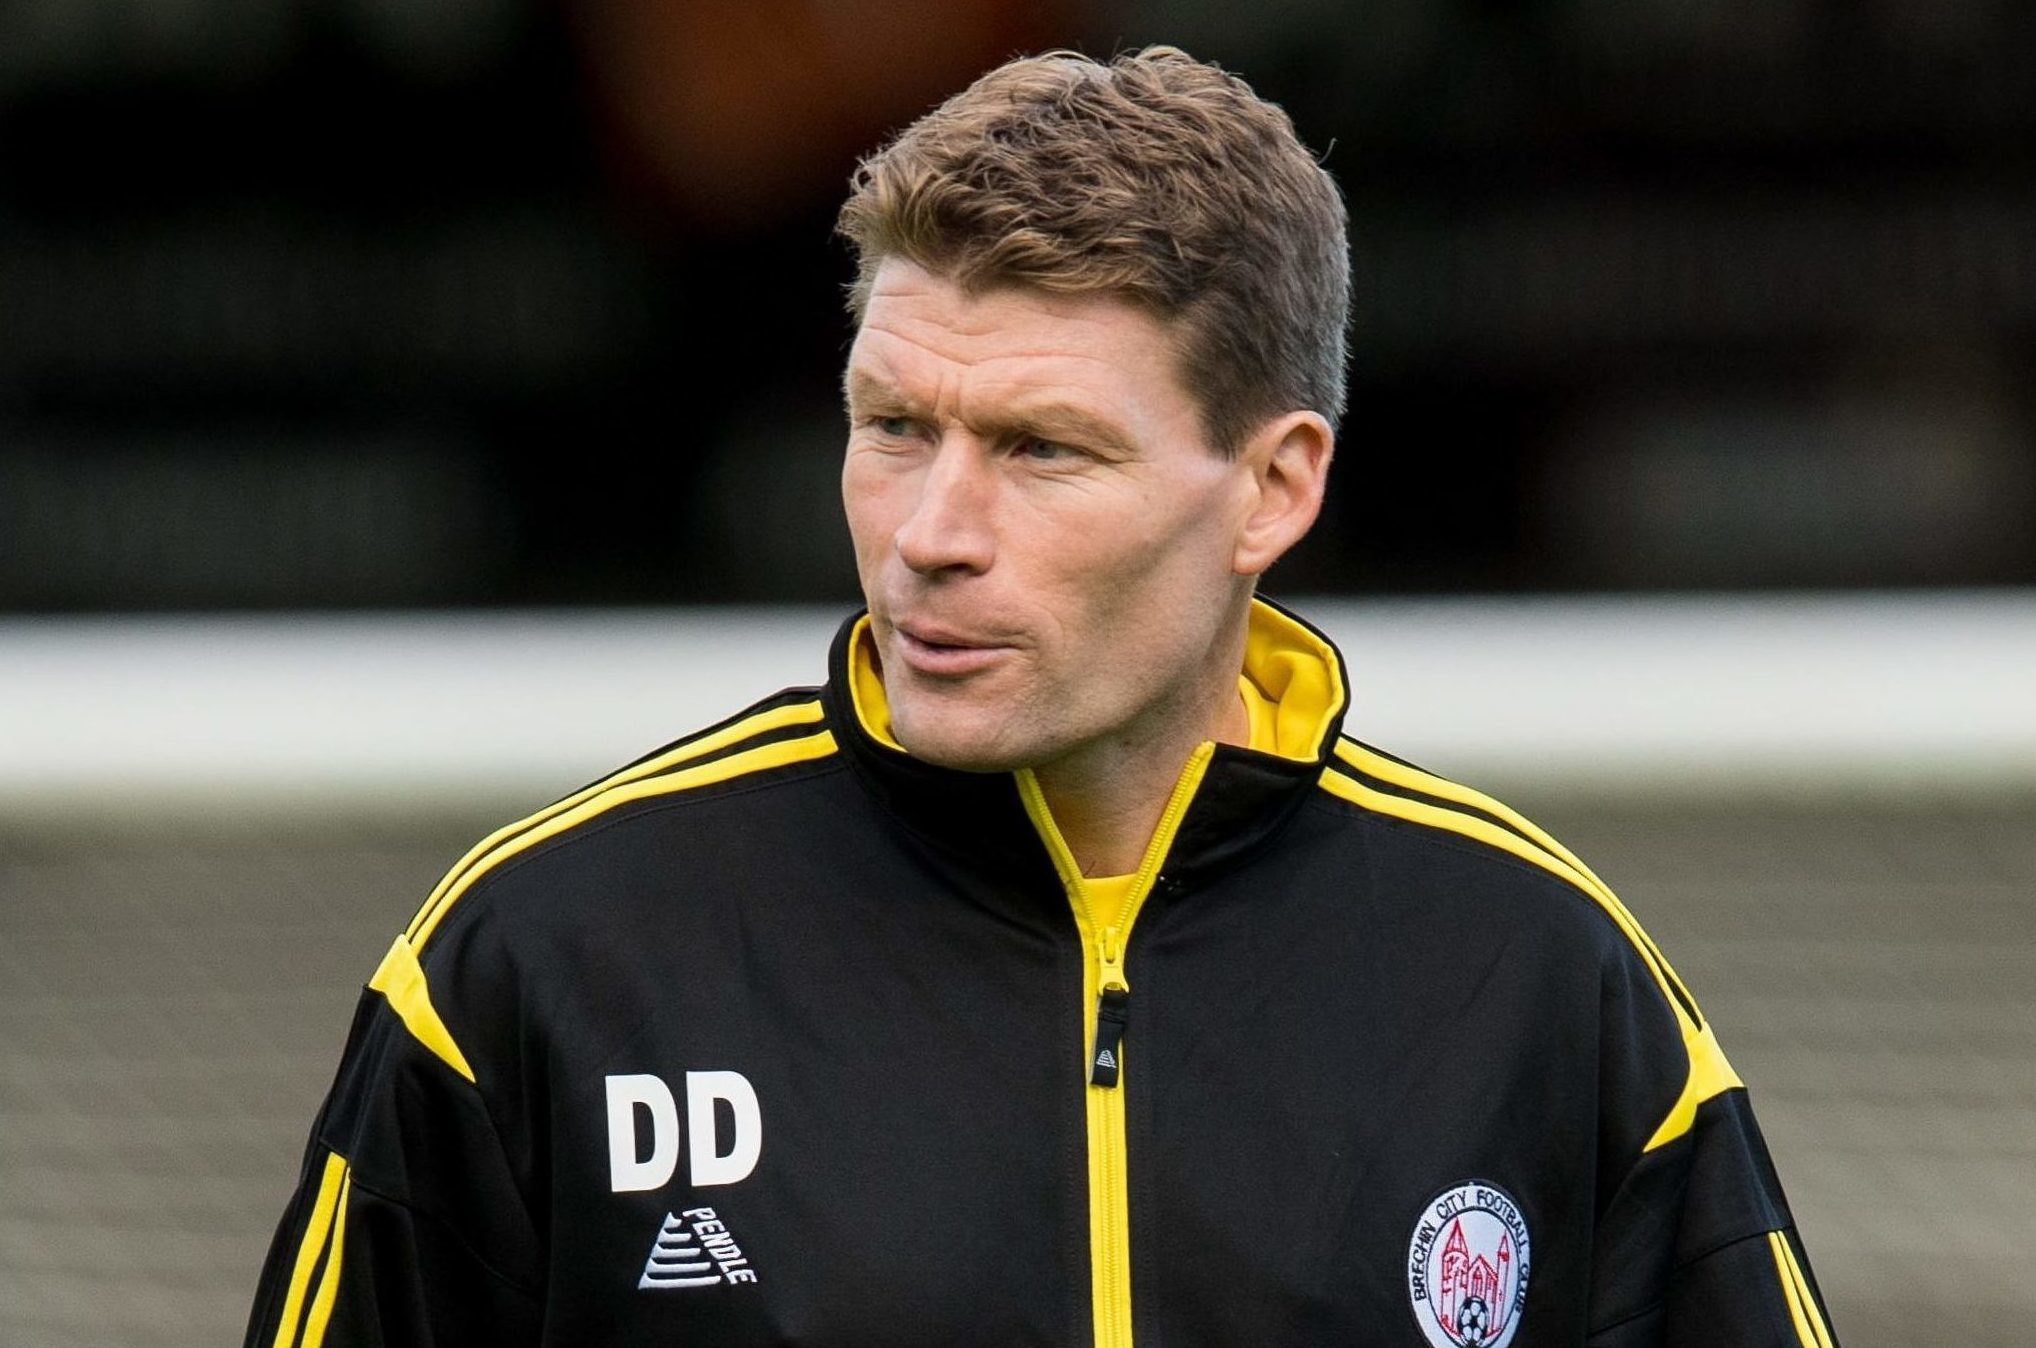 Darren Dods says it's getting harder for clubs like Brechin to compete for players